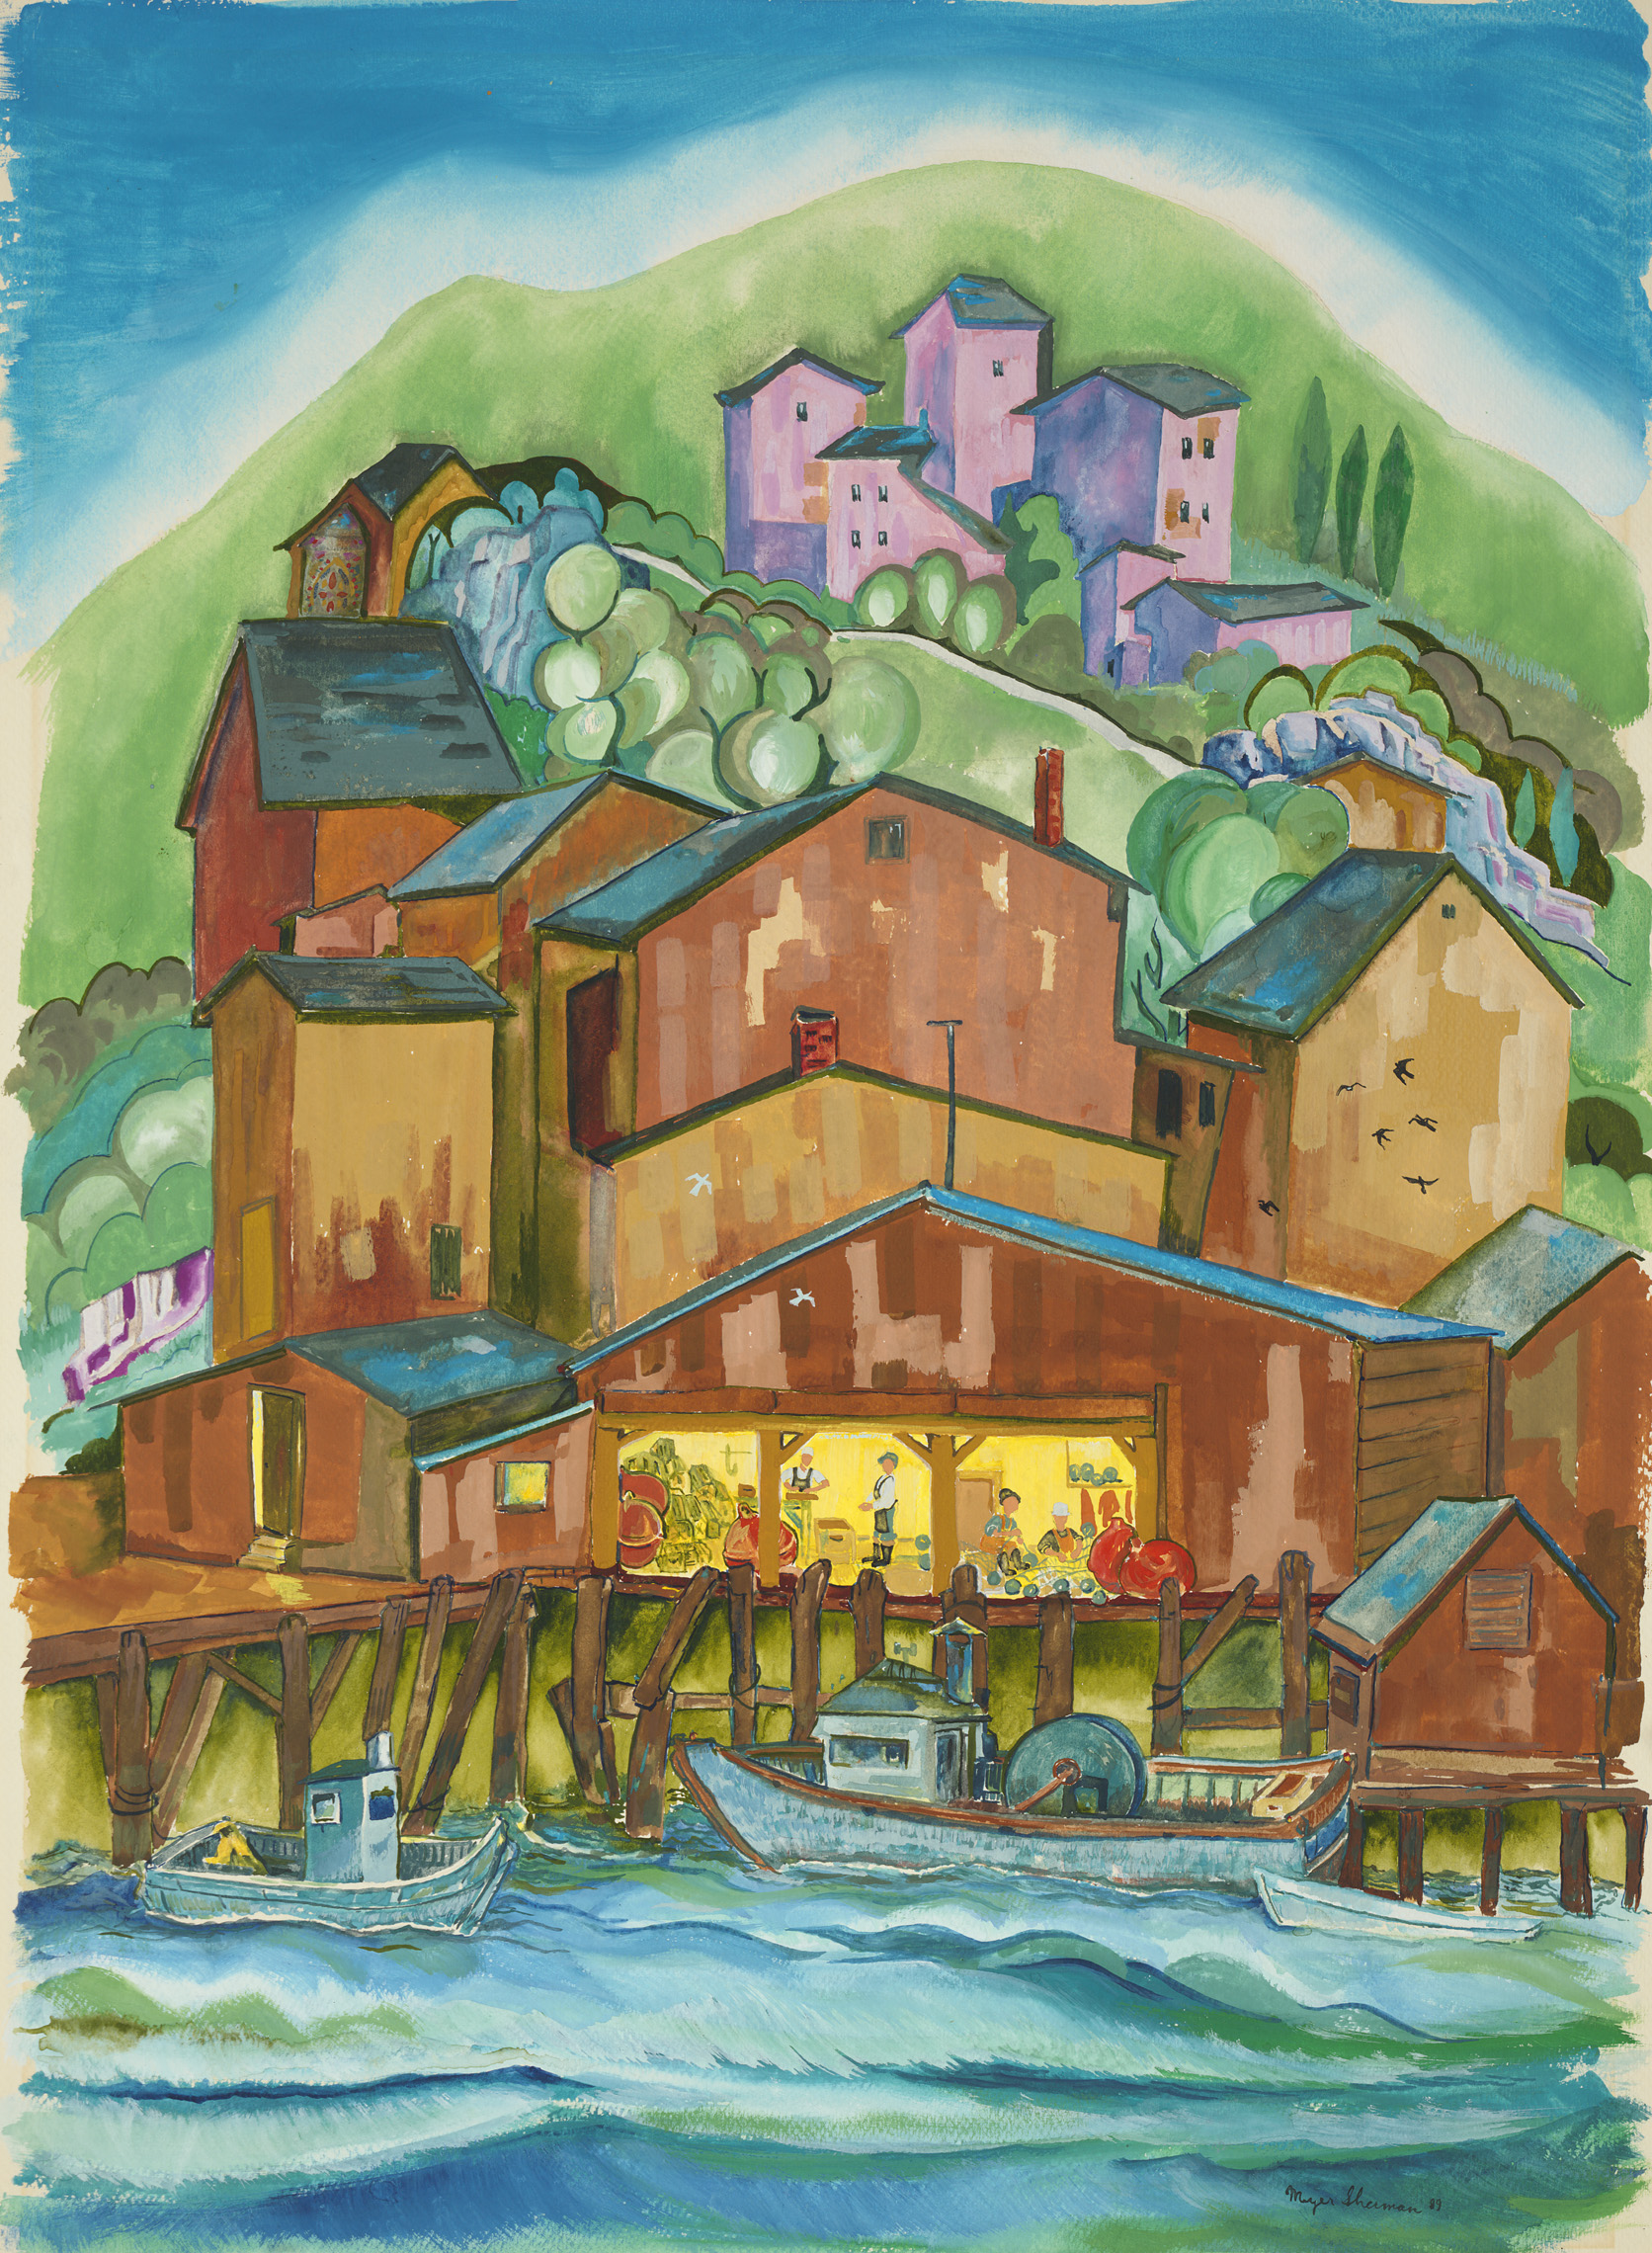 sherman 2 fishing village 22x30A2